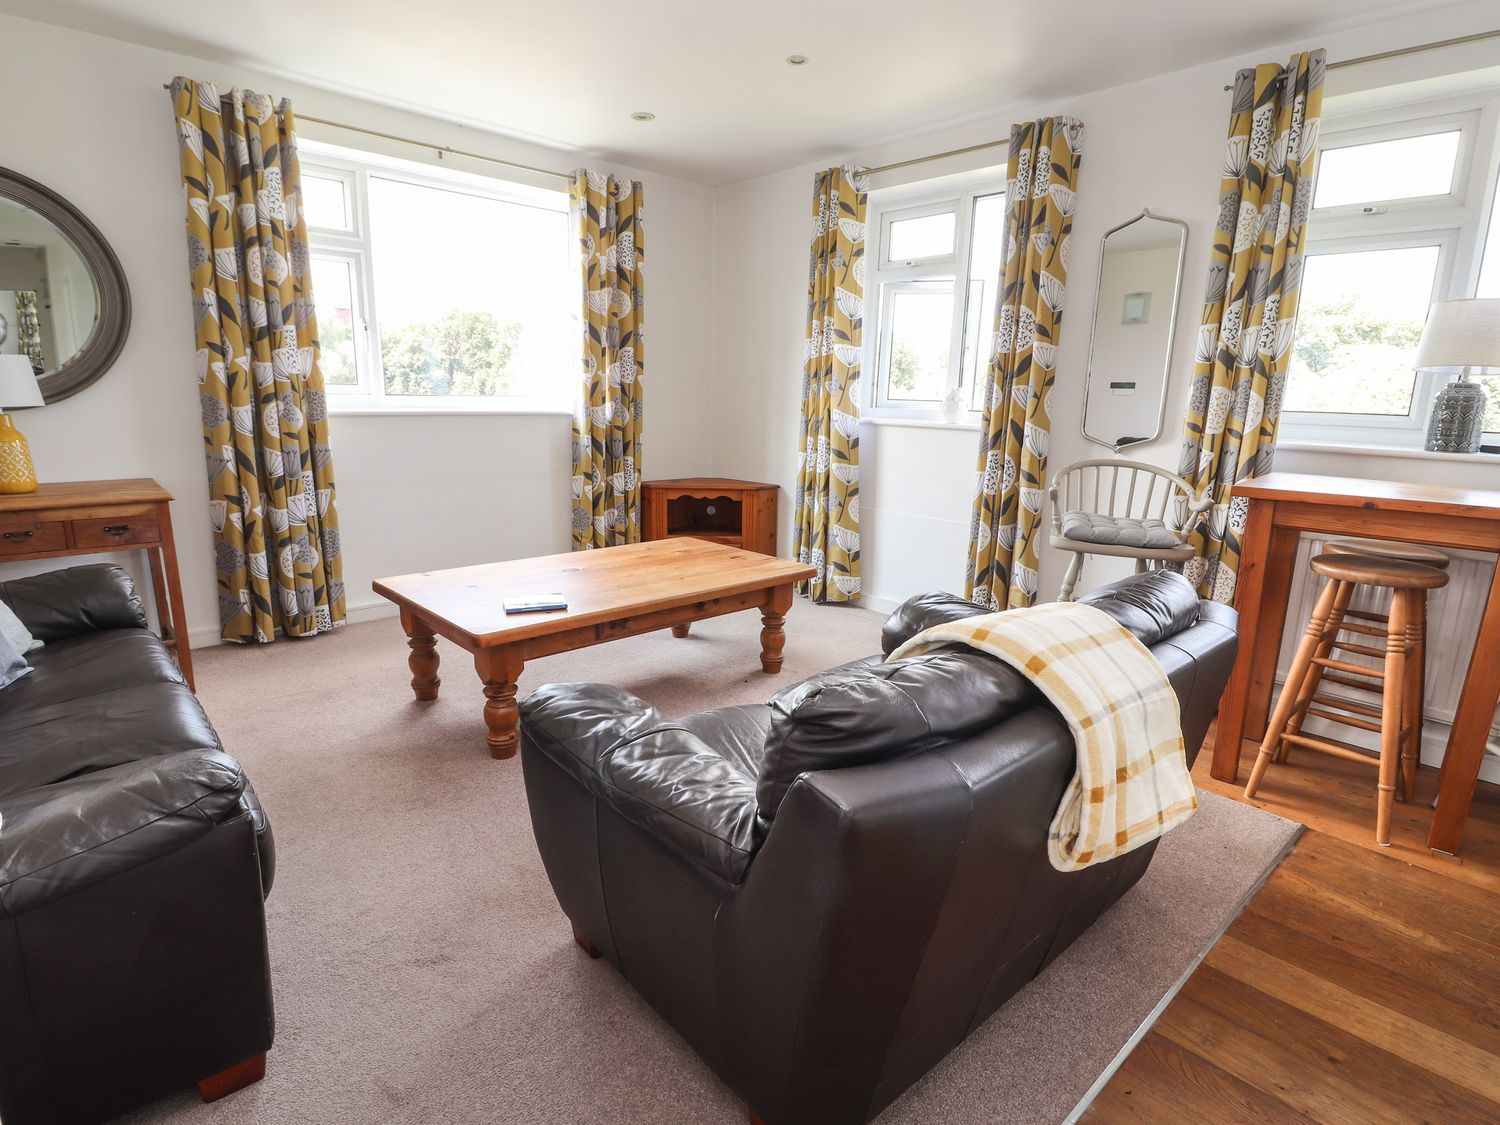 12 Edgar Place in Chester - sleeps 4 people